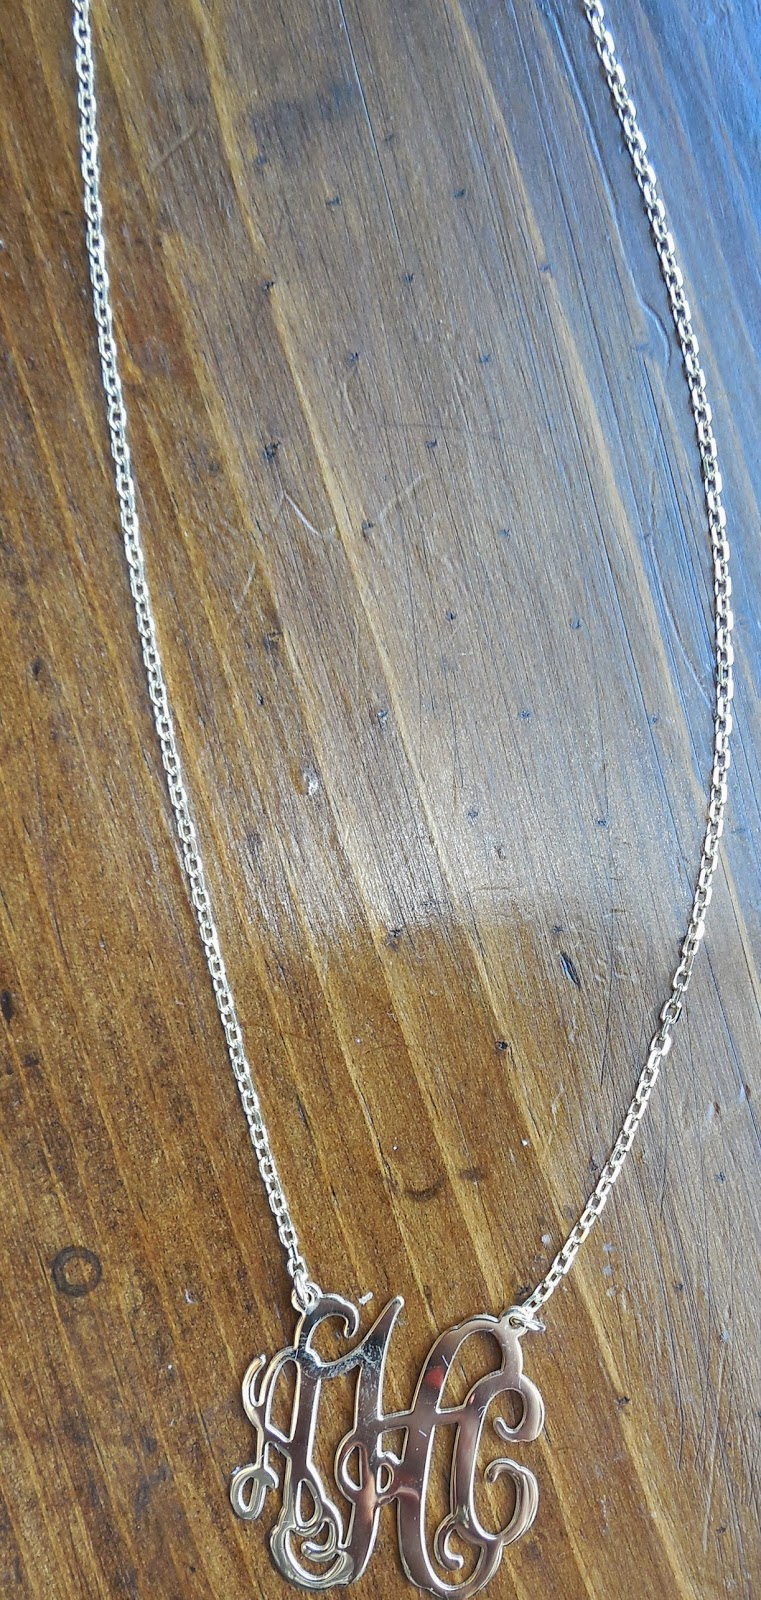 9th & Elm necklace